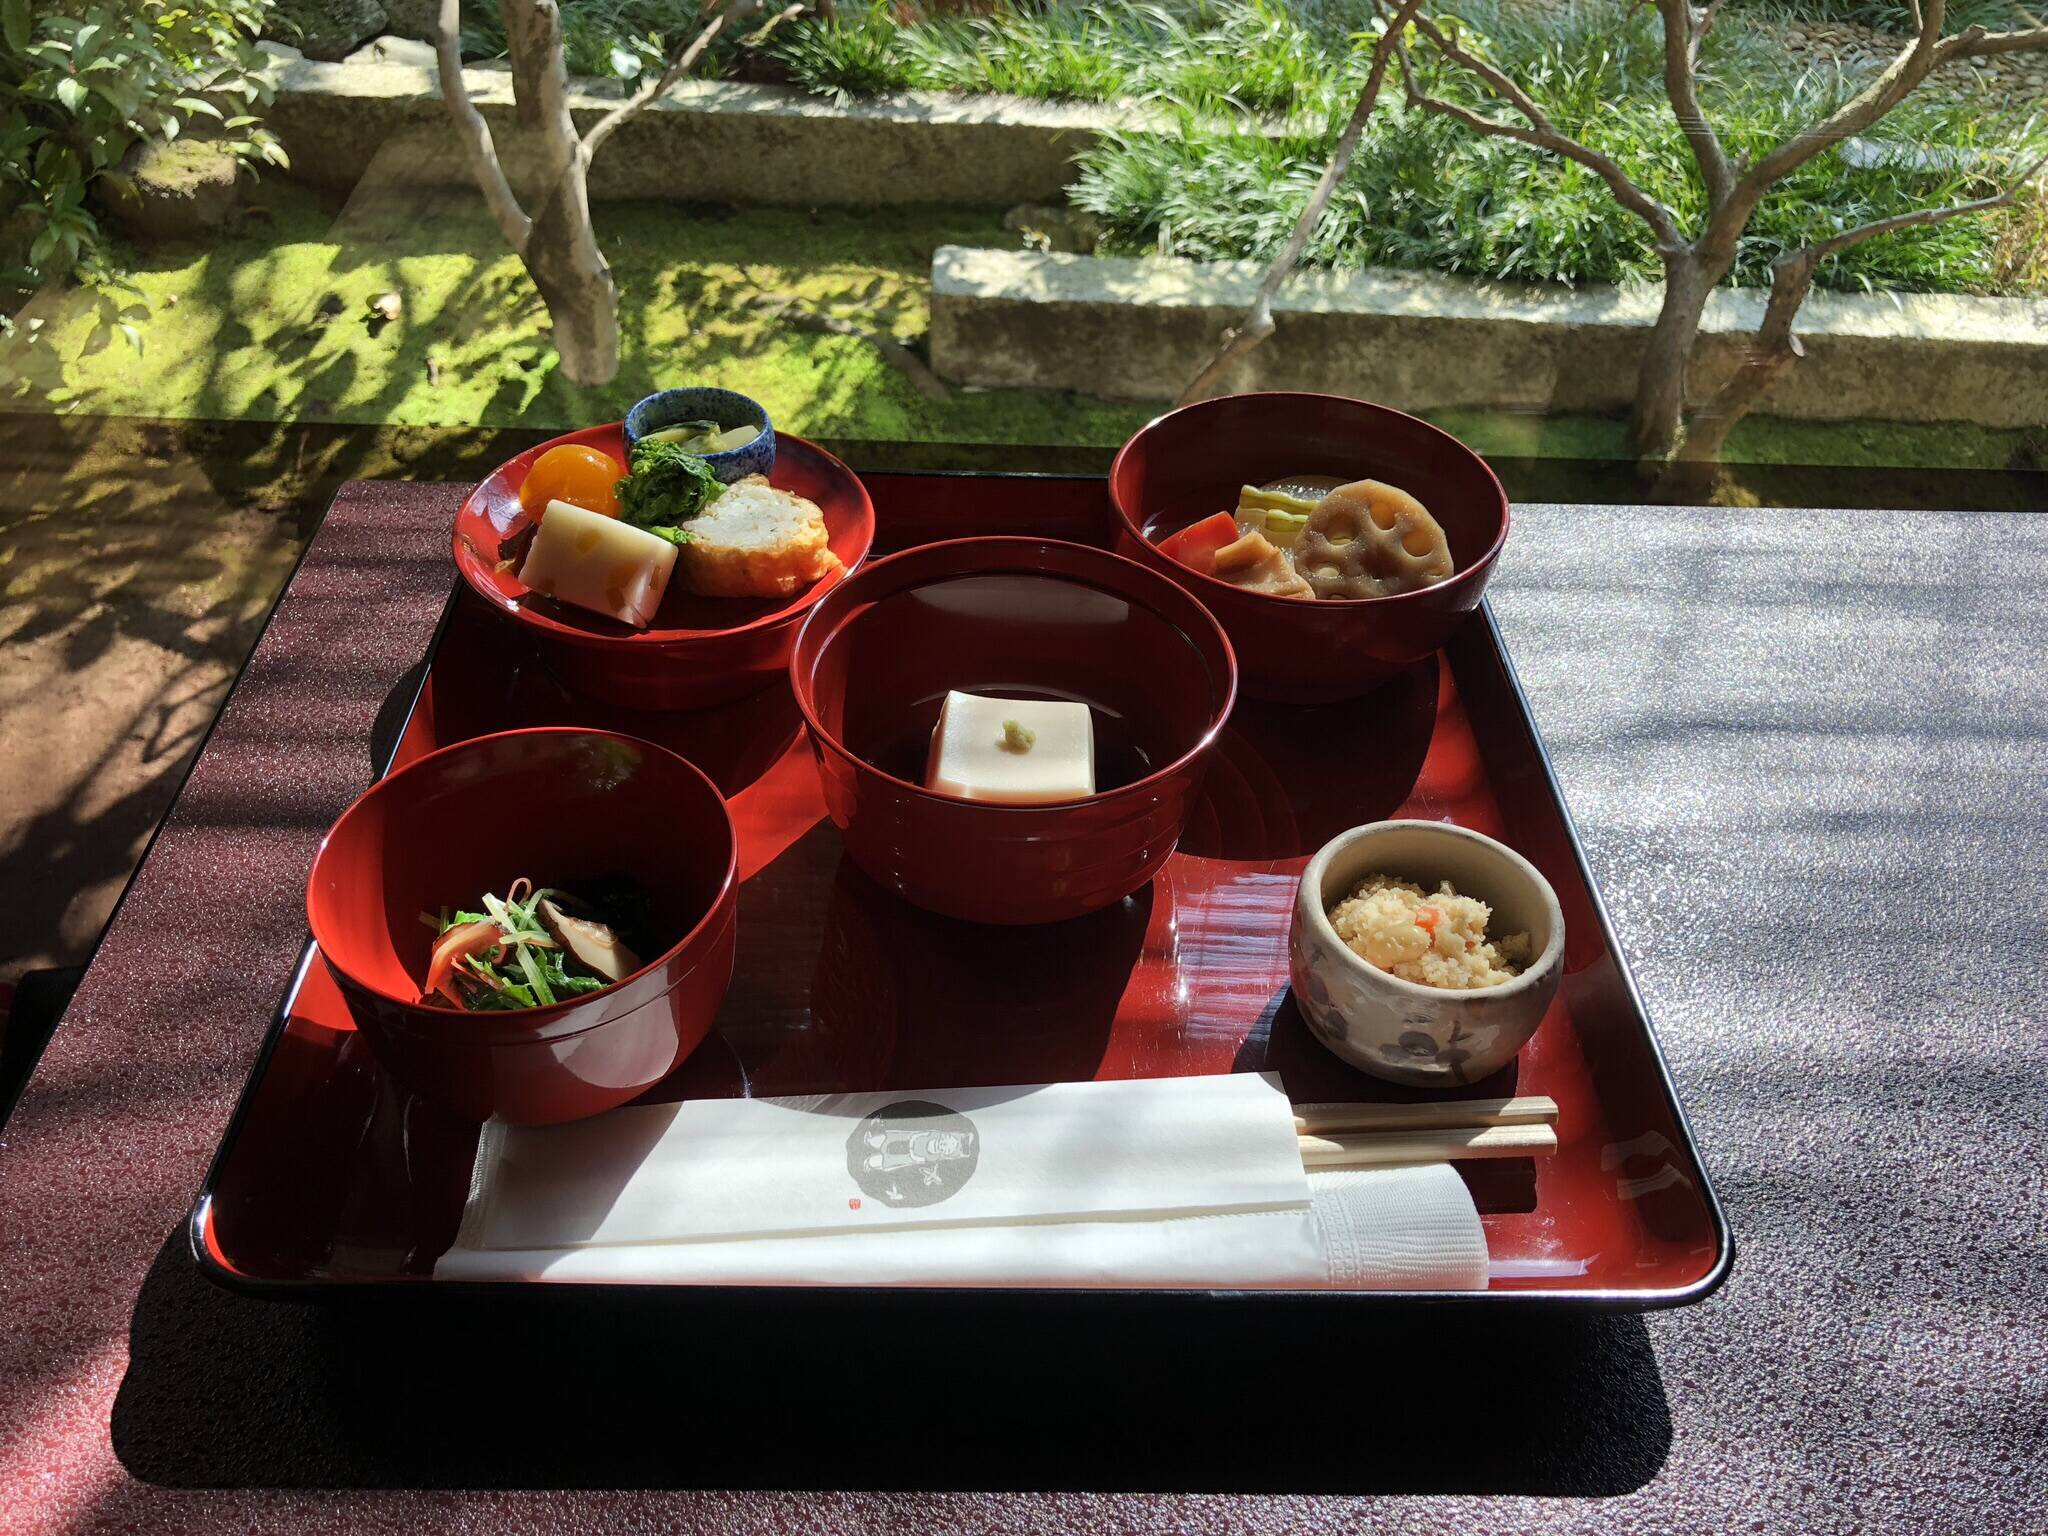 Shojin ryori in red bowls on red platter